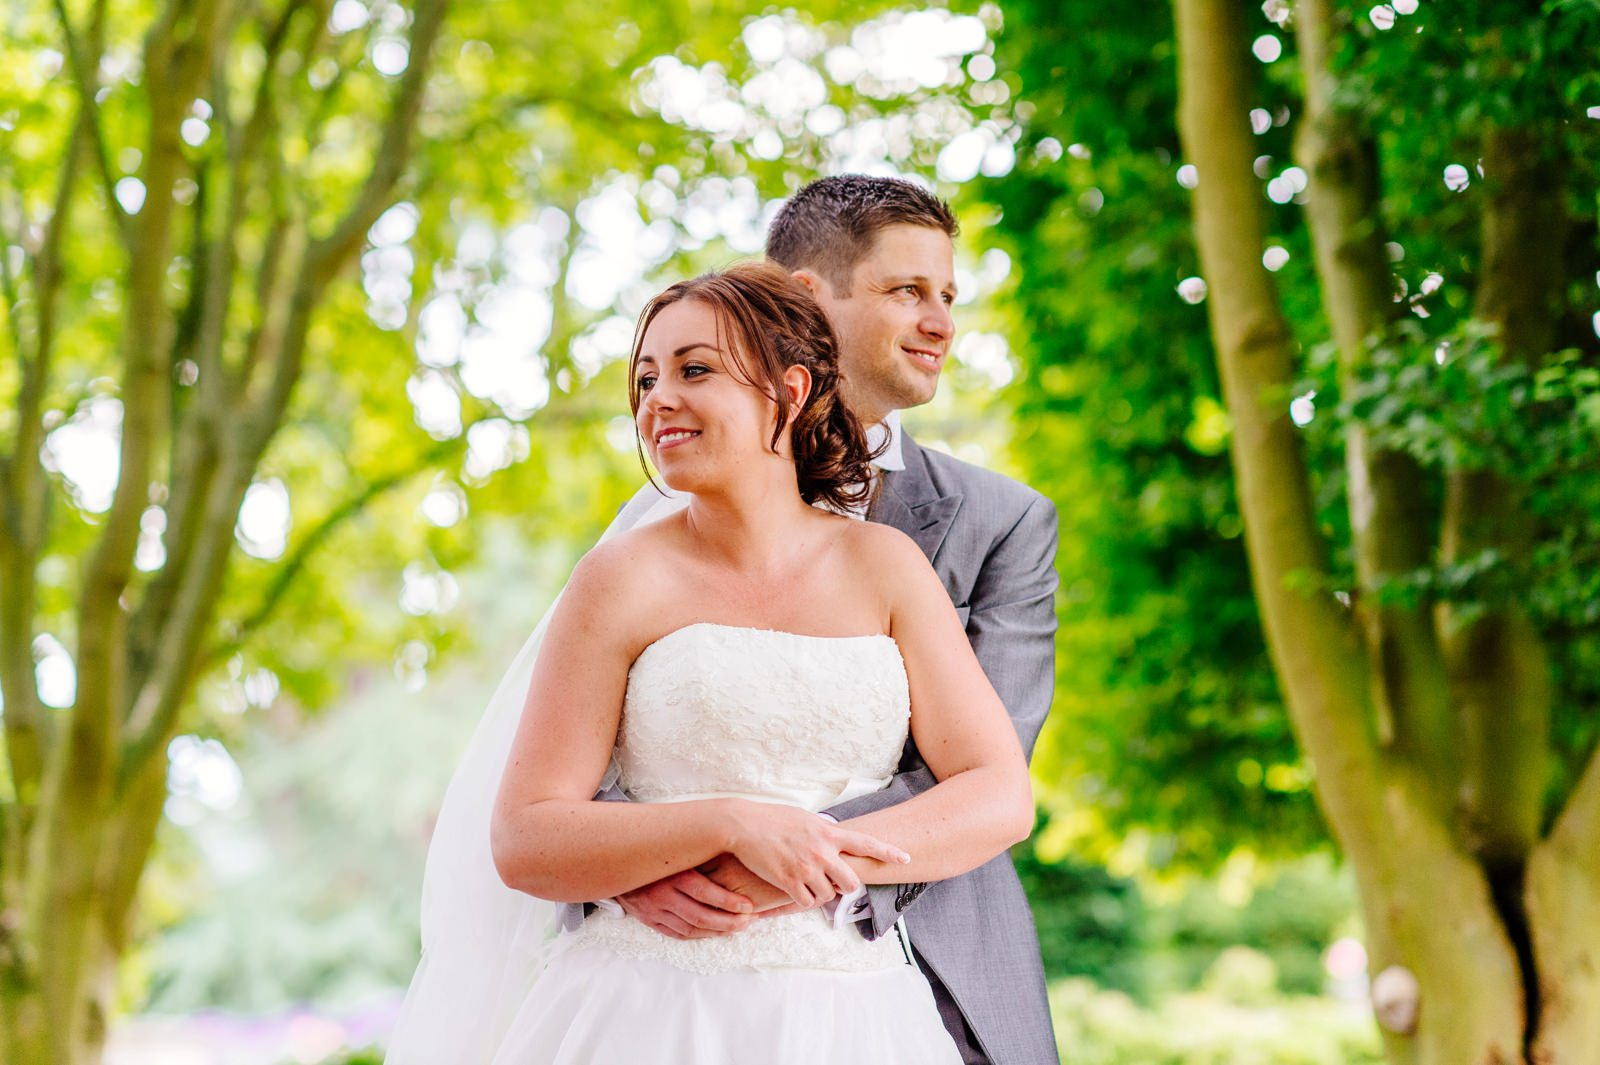 Fawsley Hall Wedding Photographer - Beth & Paul_0012